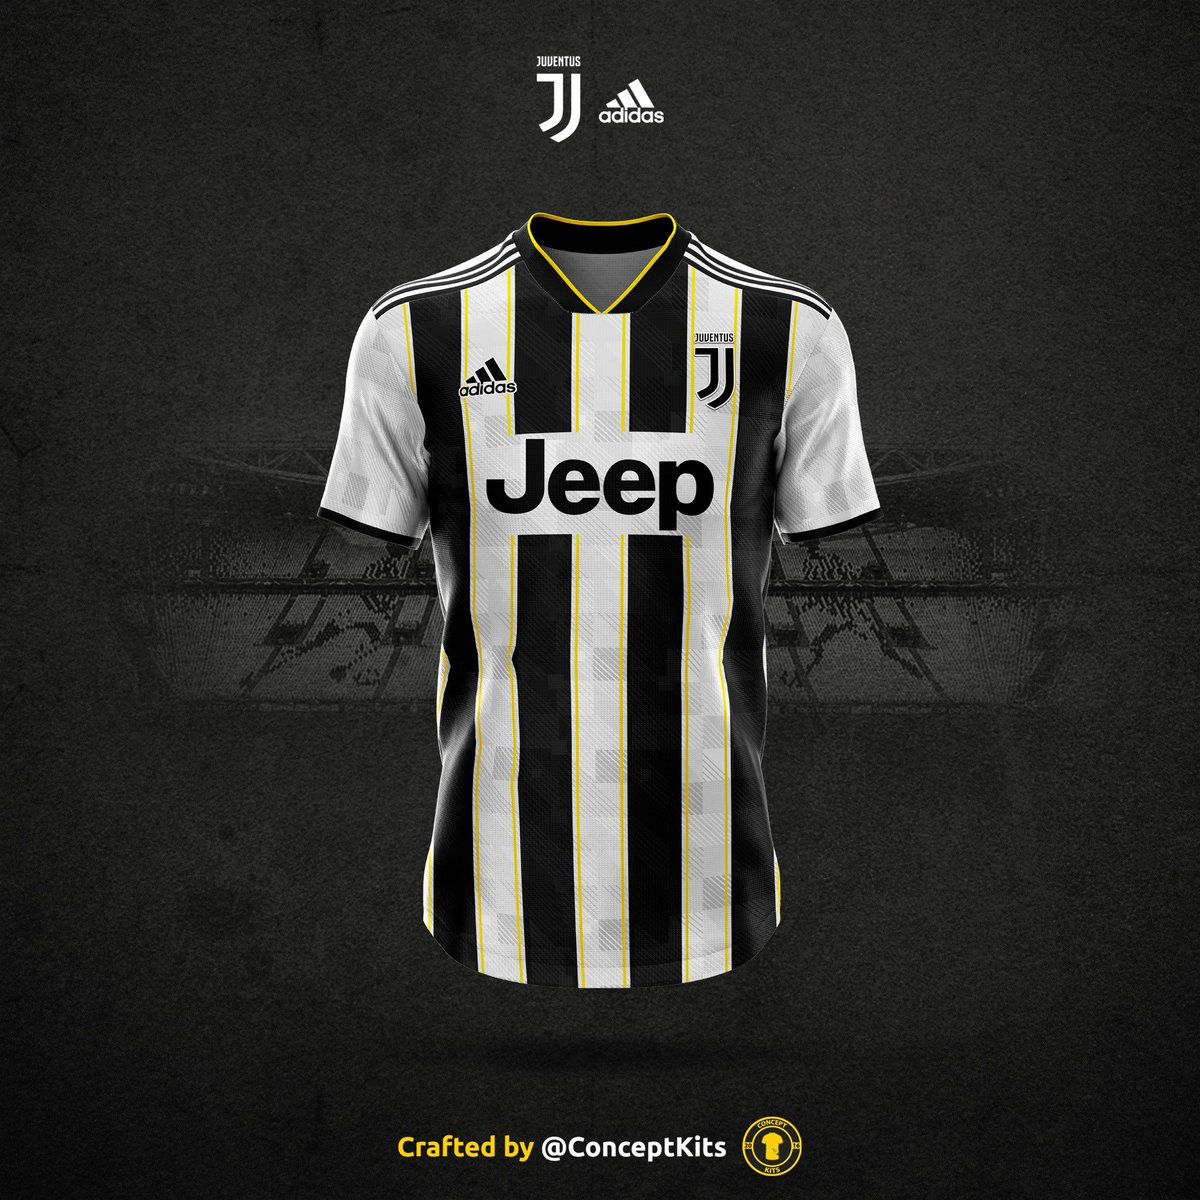 best wholesaler 8bf74 185c7 ConceptKits Juventus Football Club home kit concept for the ...